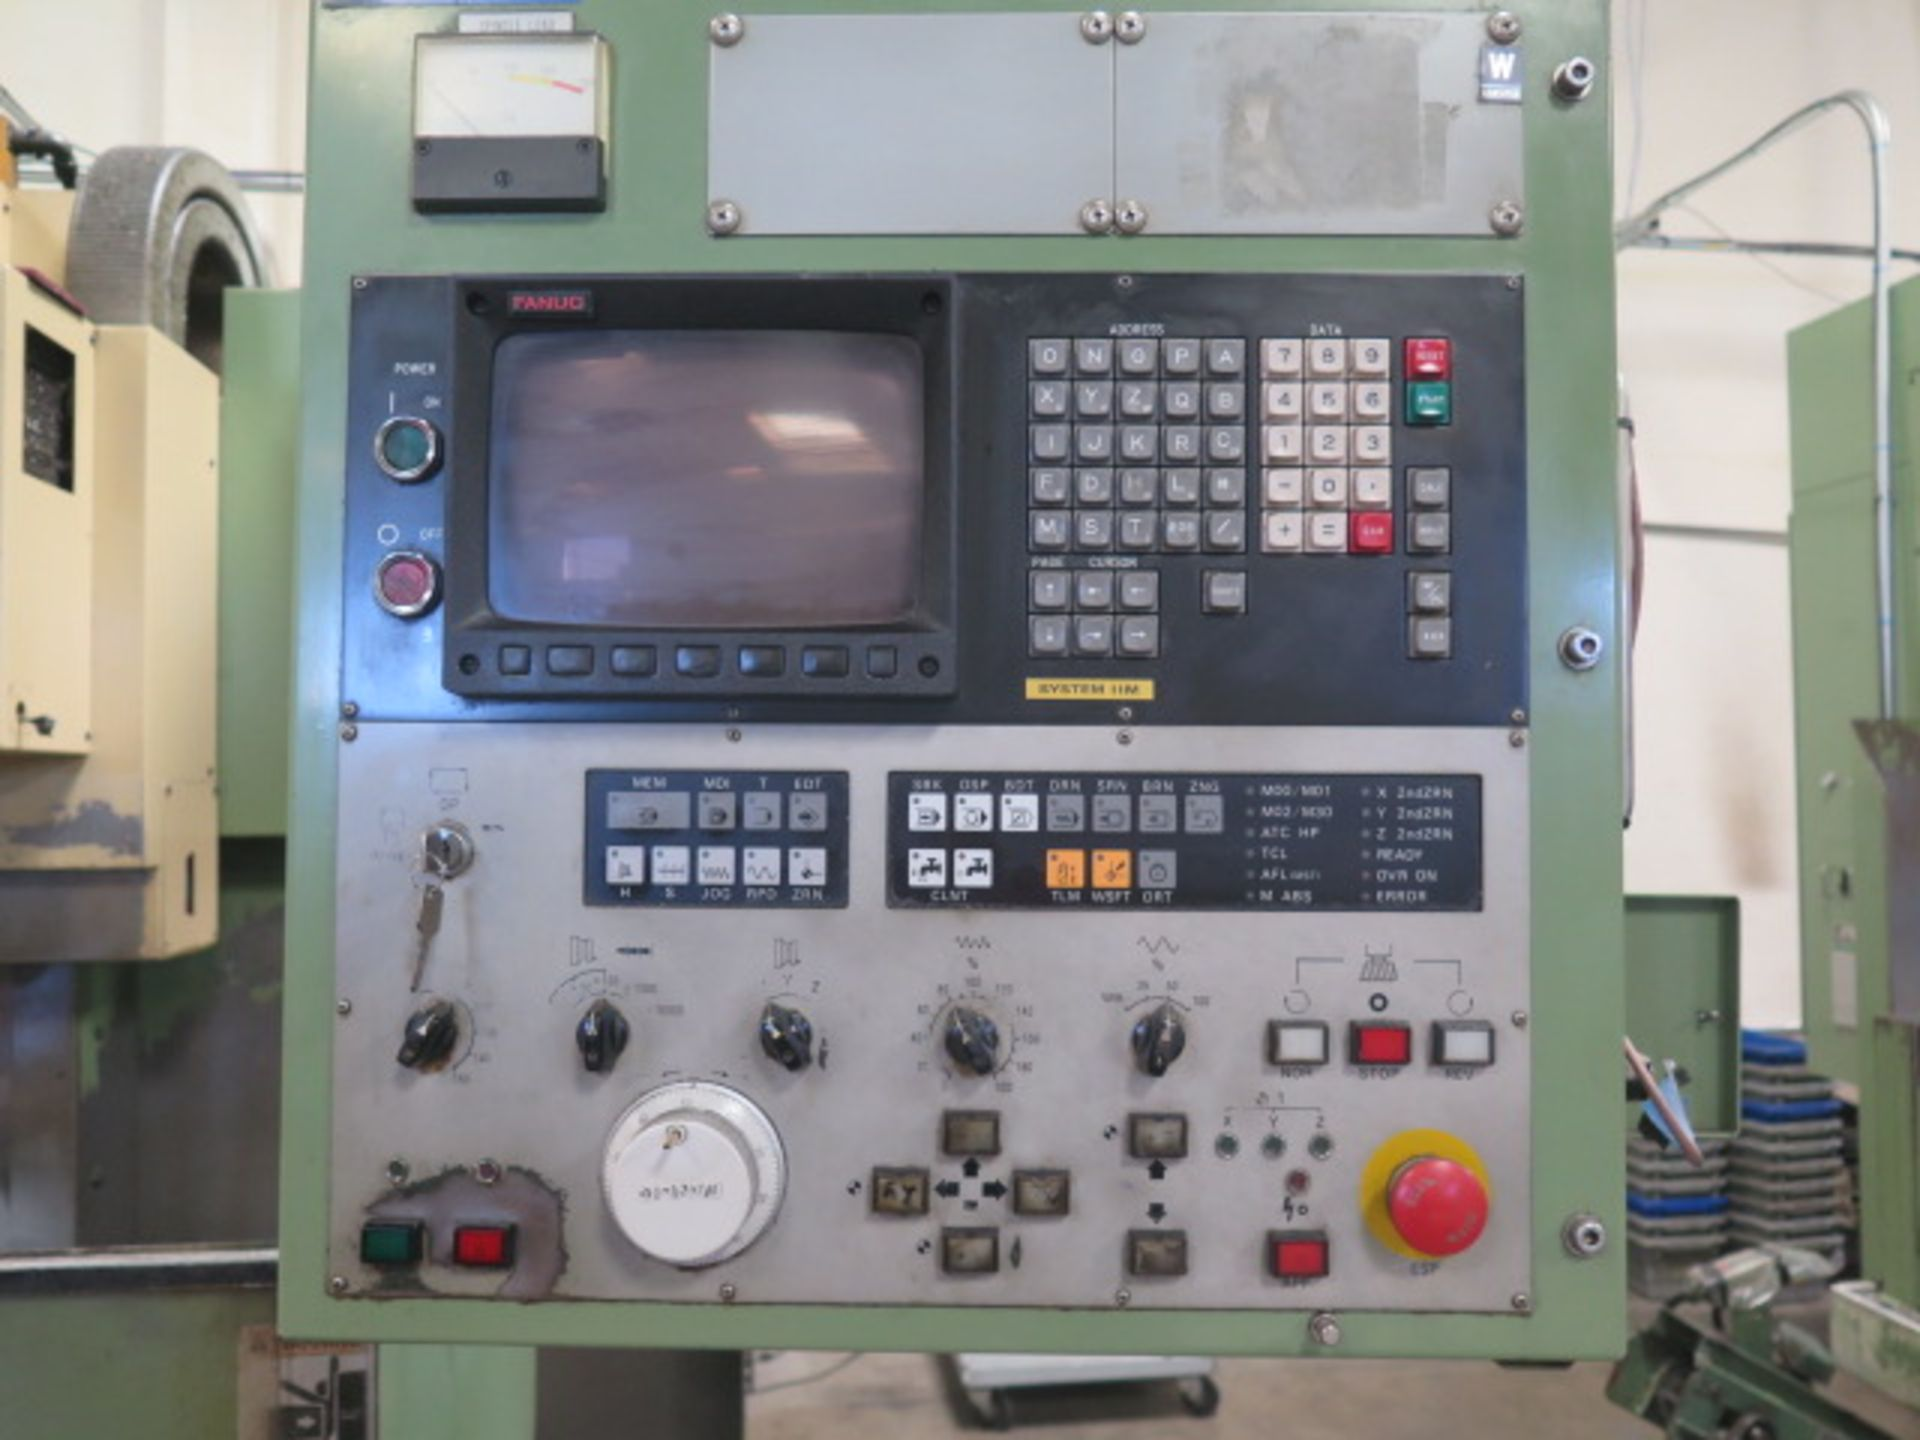 Moti Seiki MV-35/40 CNC VMC s/n 759 w/ Fanuc System 11M Controls, 20-Station ATC, SOLD AS IS - Image 4 of 14